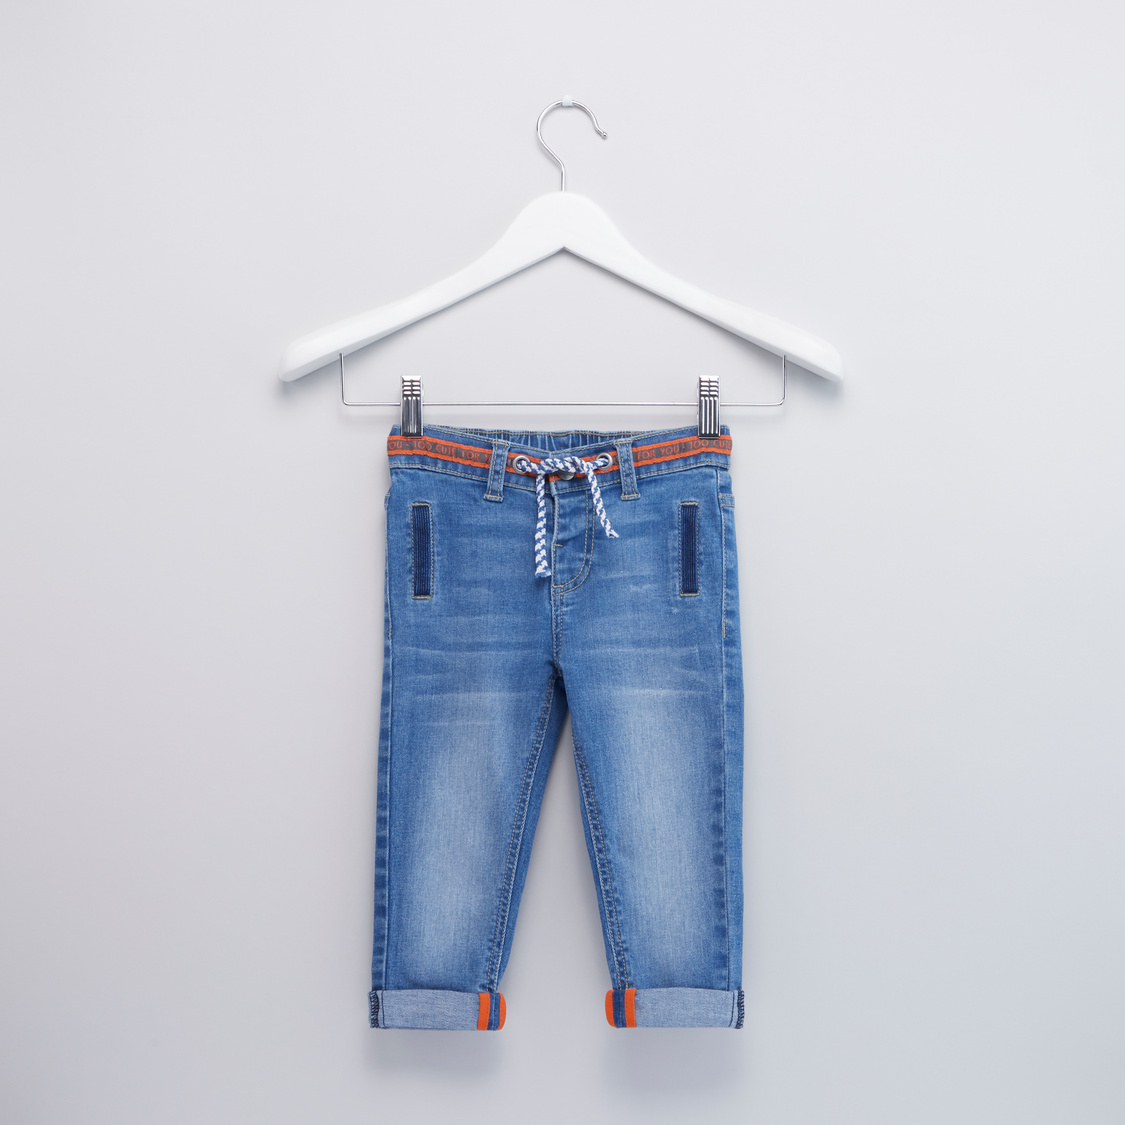 Jeans with Drawstring Waistband and Pockets